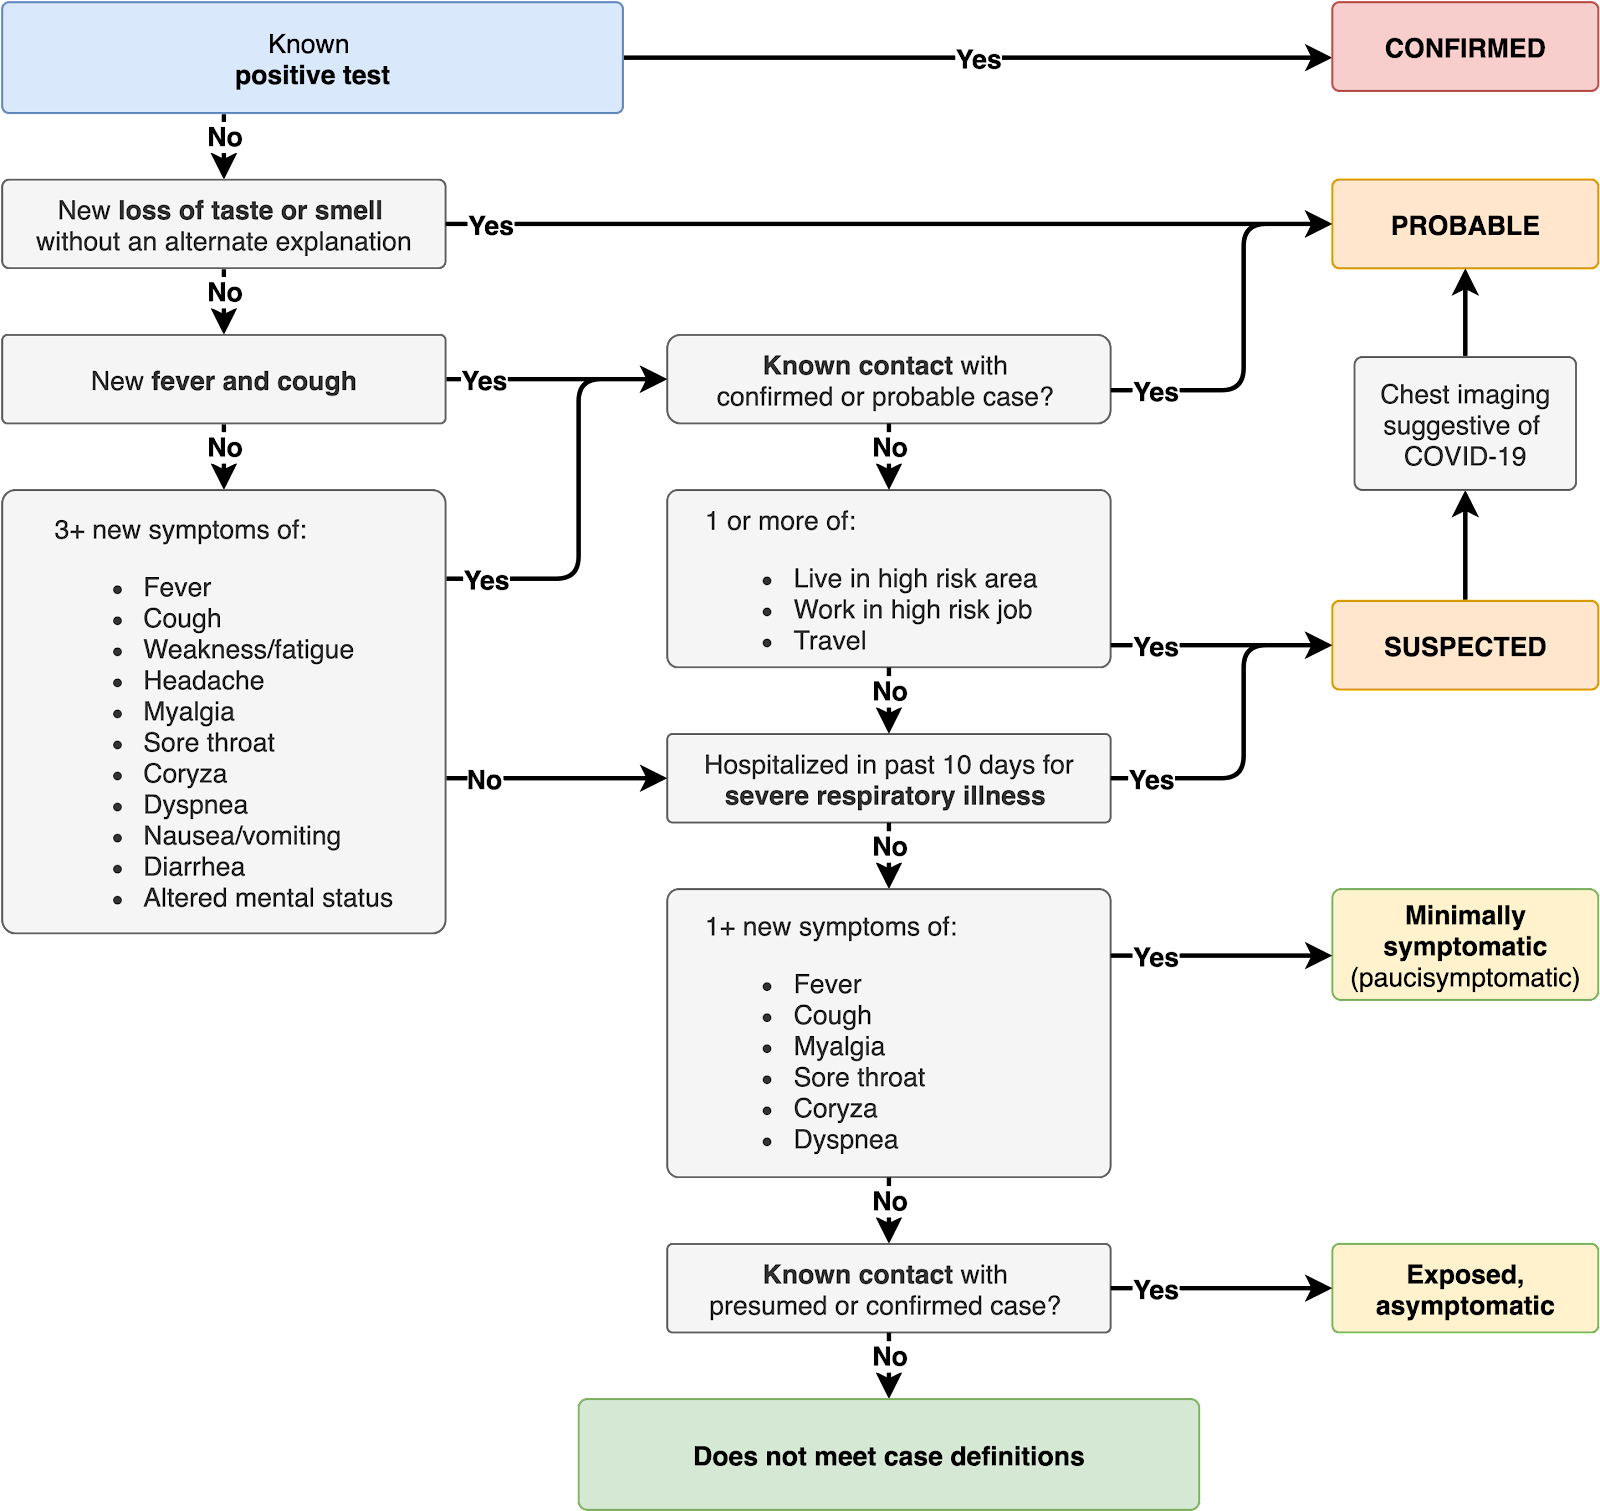 This outlines a potential flow chart for defining confirmed, probable, suspected, and minimally symptomatic potential cases.